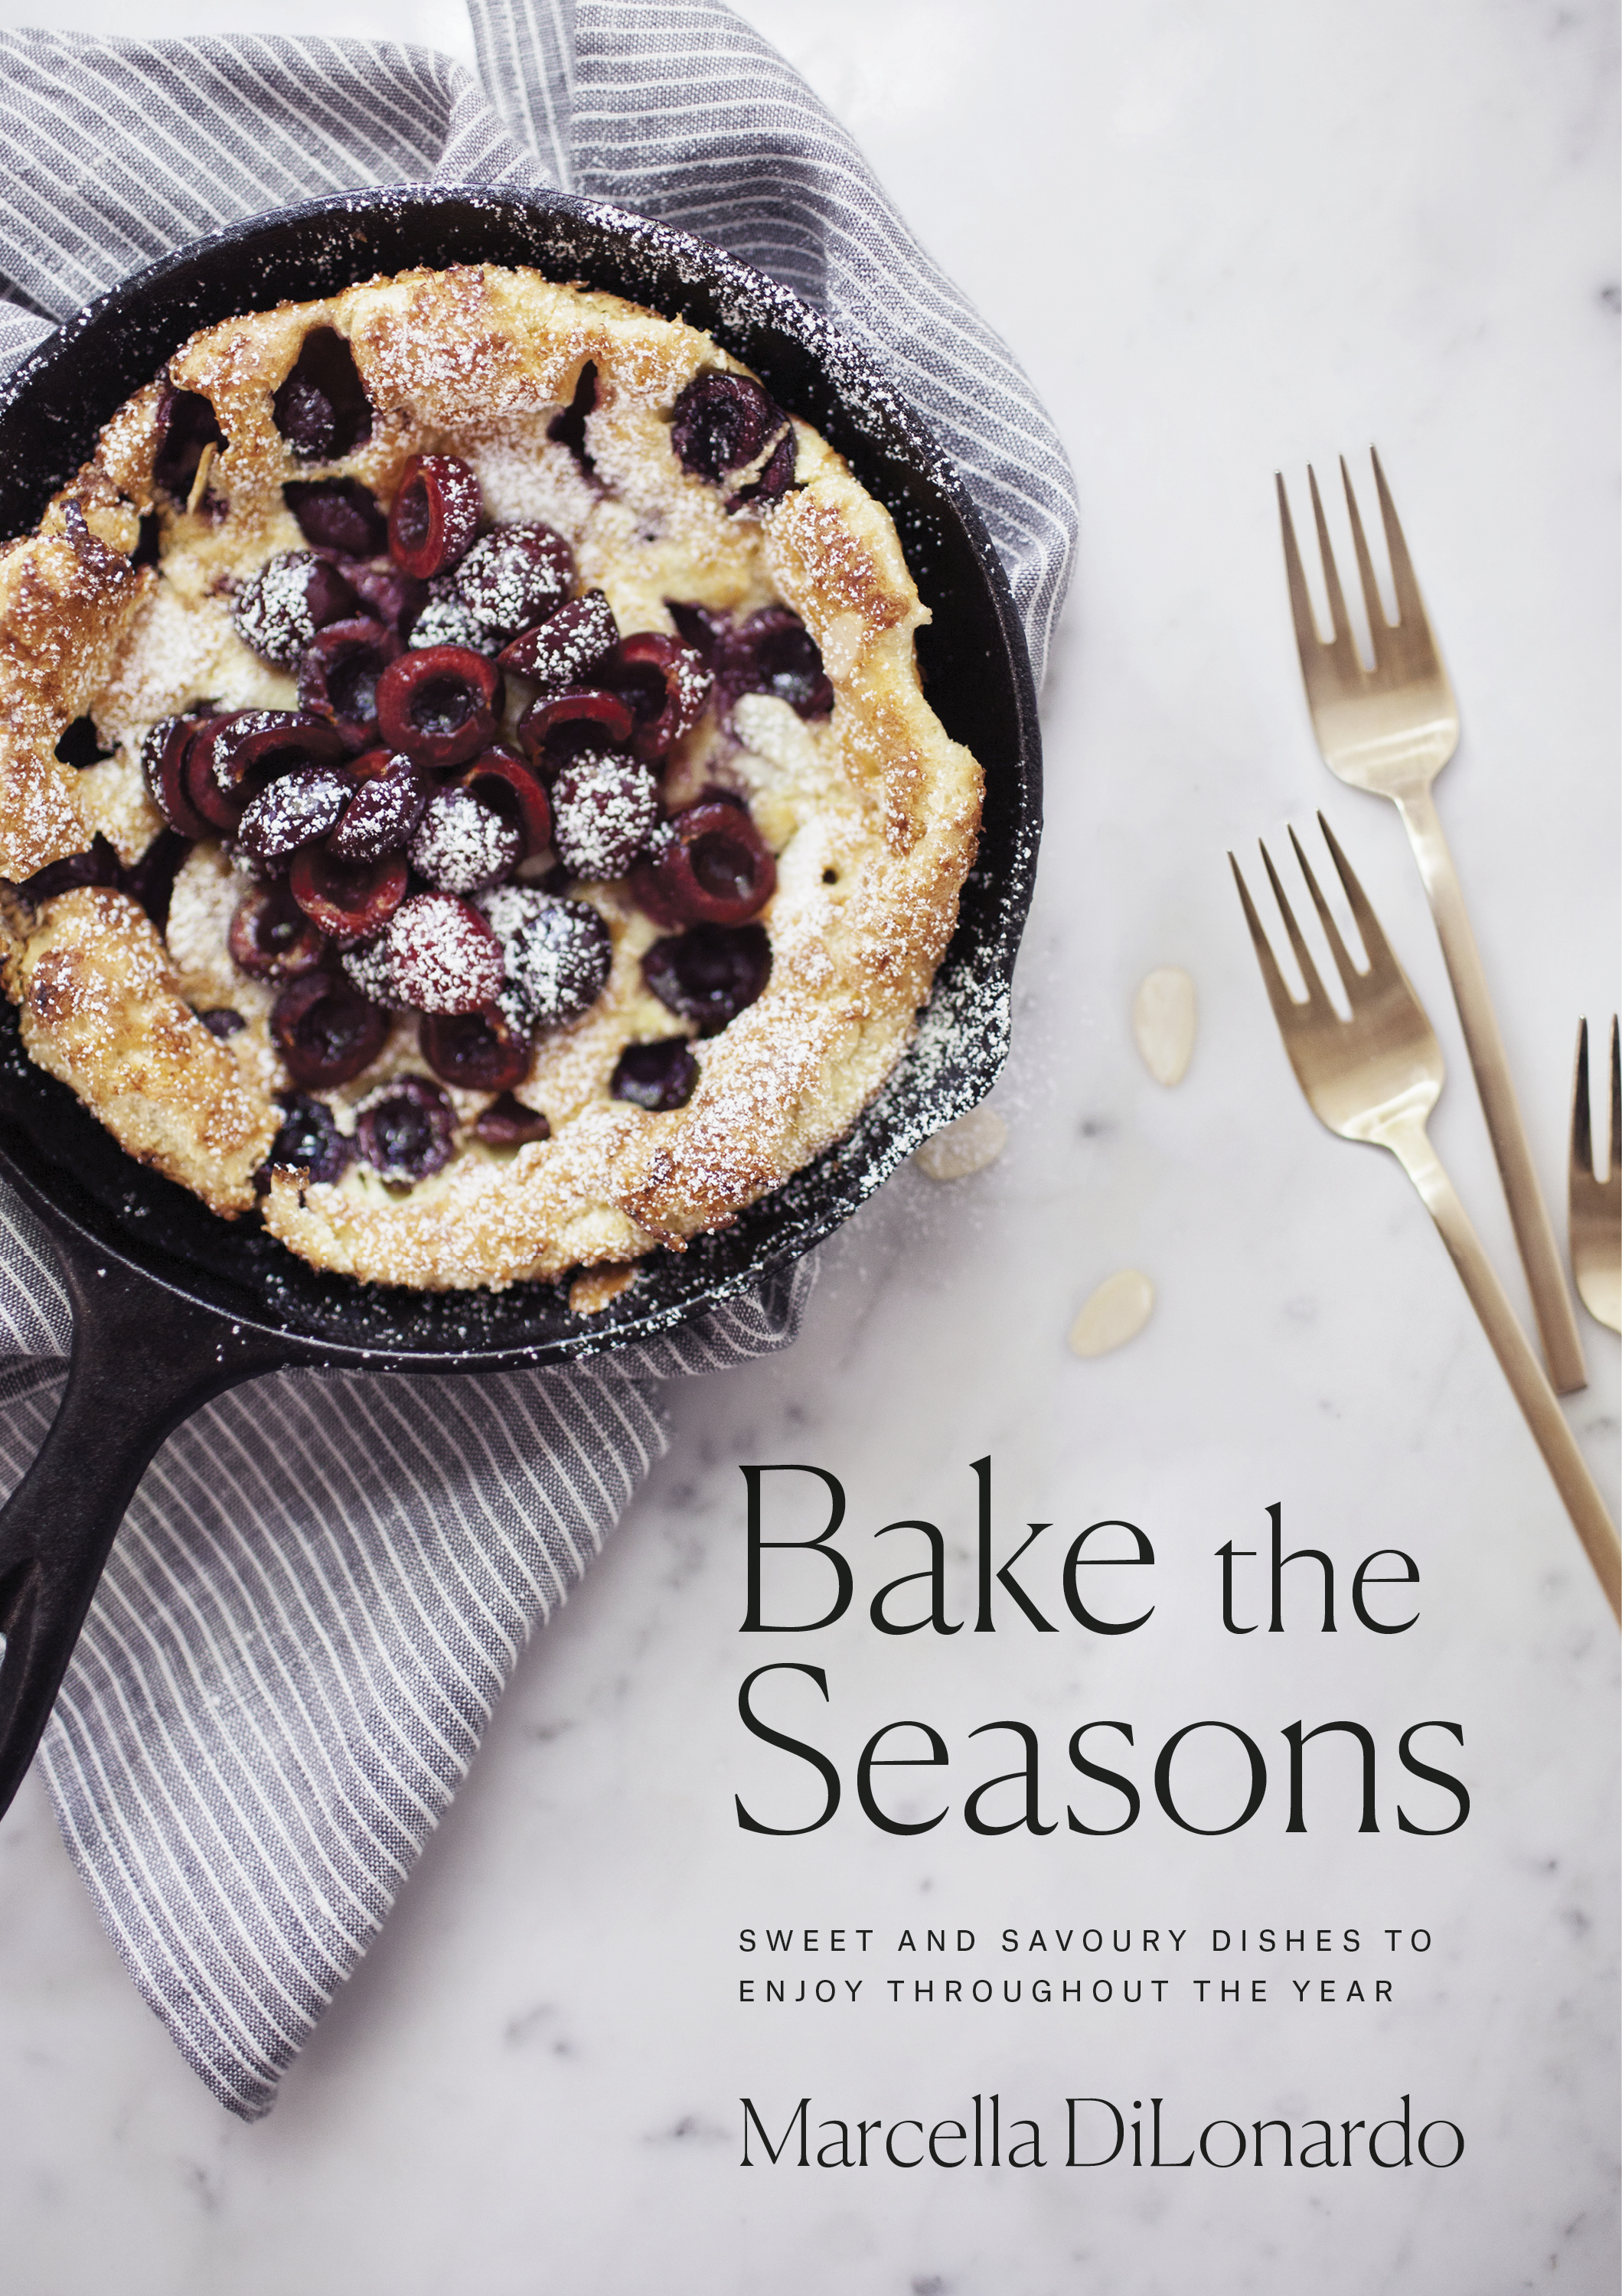 BaketheSeasons_cover_r3.jpg